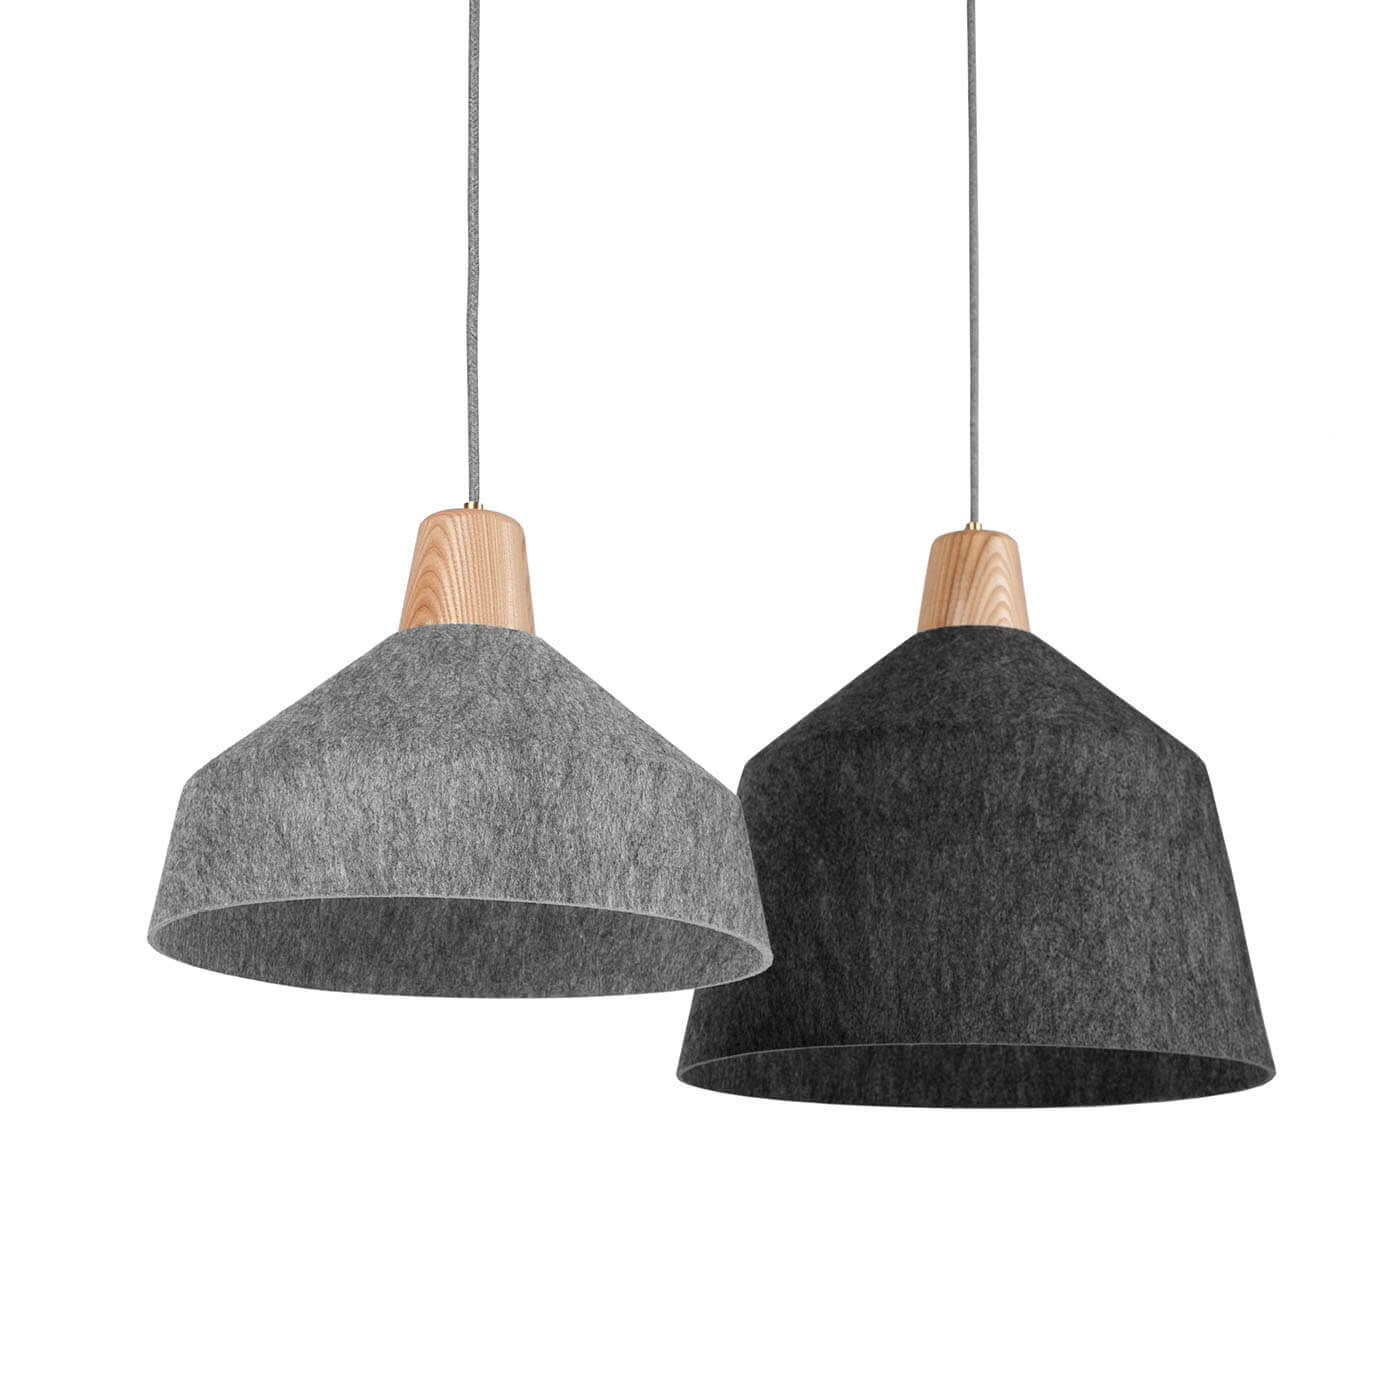 Oot-Oot_Studio_Flot_lamp_S-L_3 disainiauhind